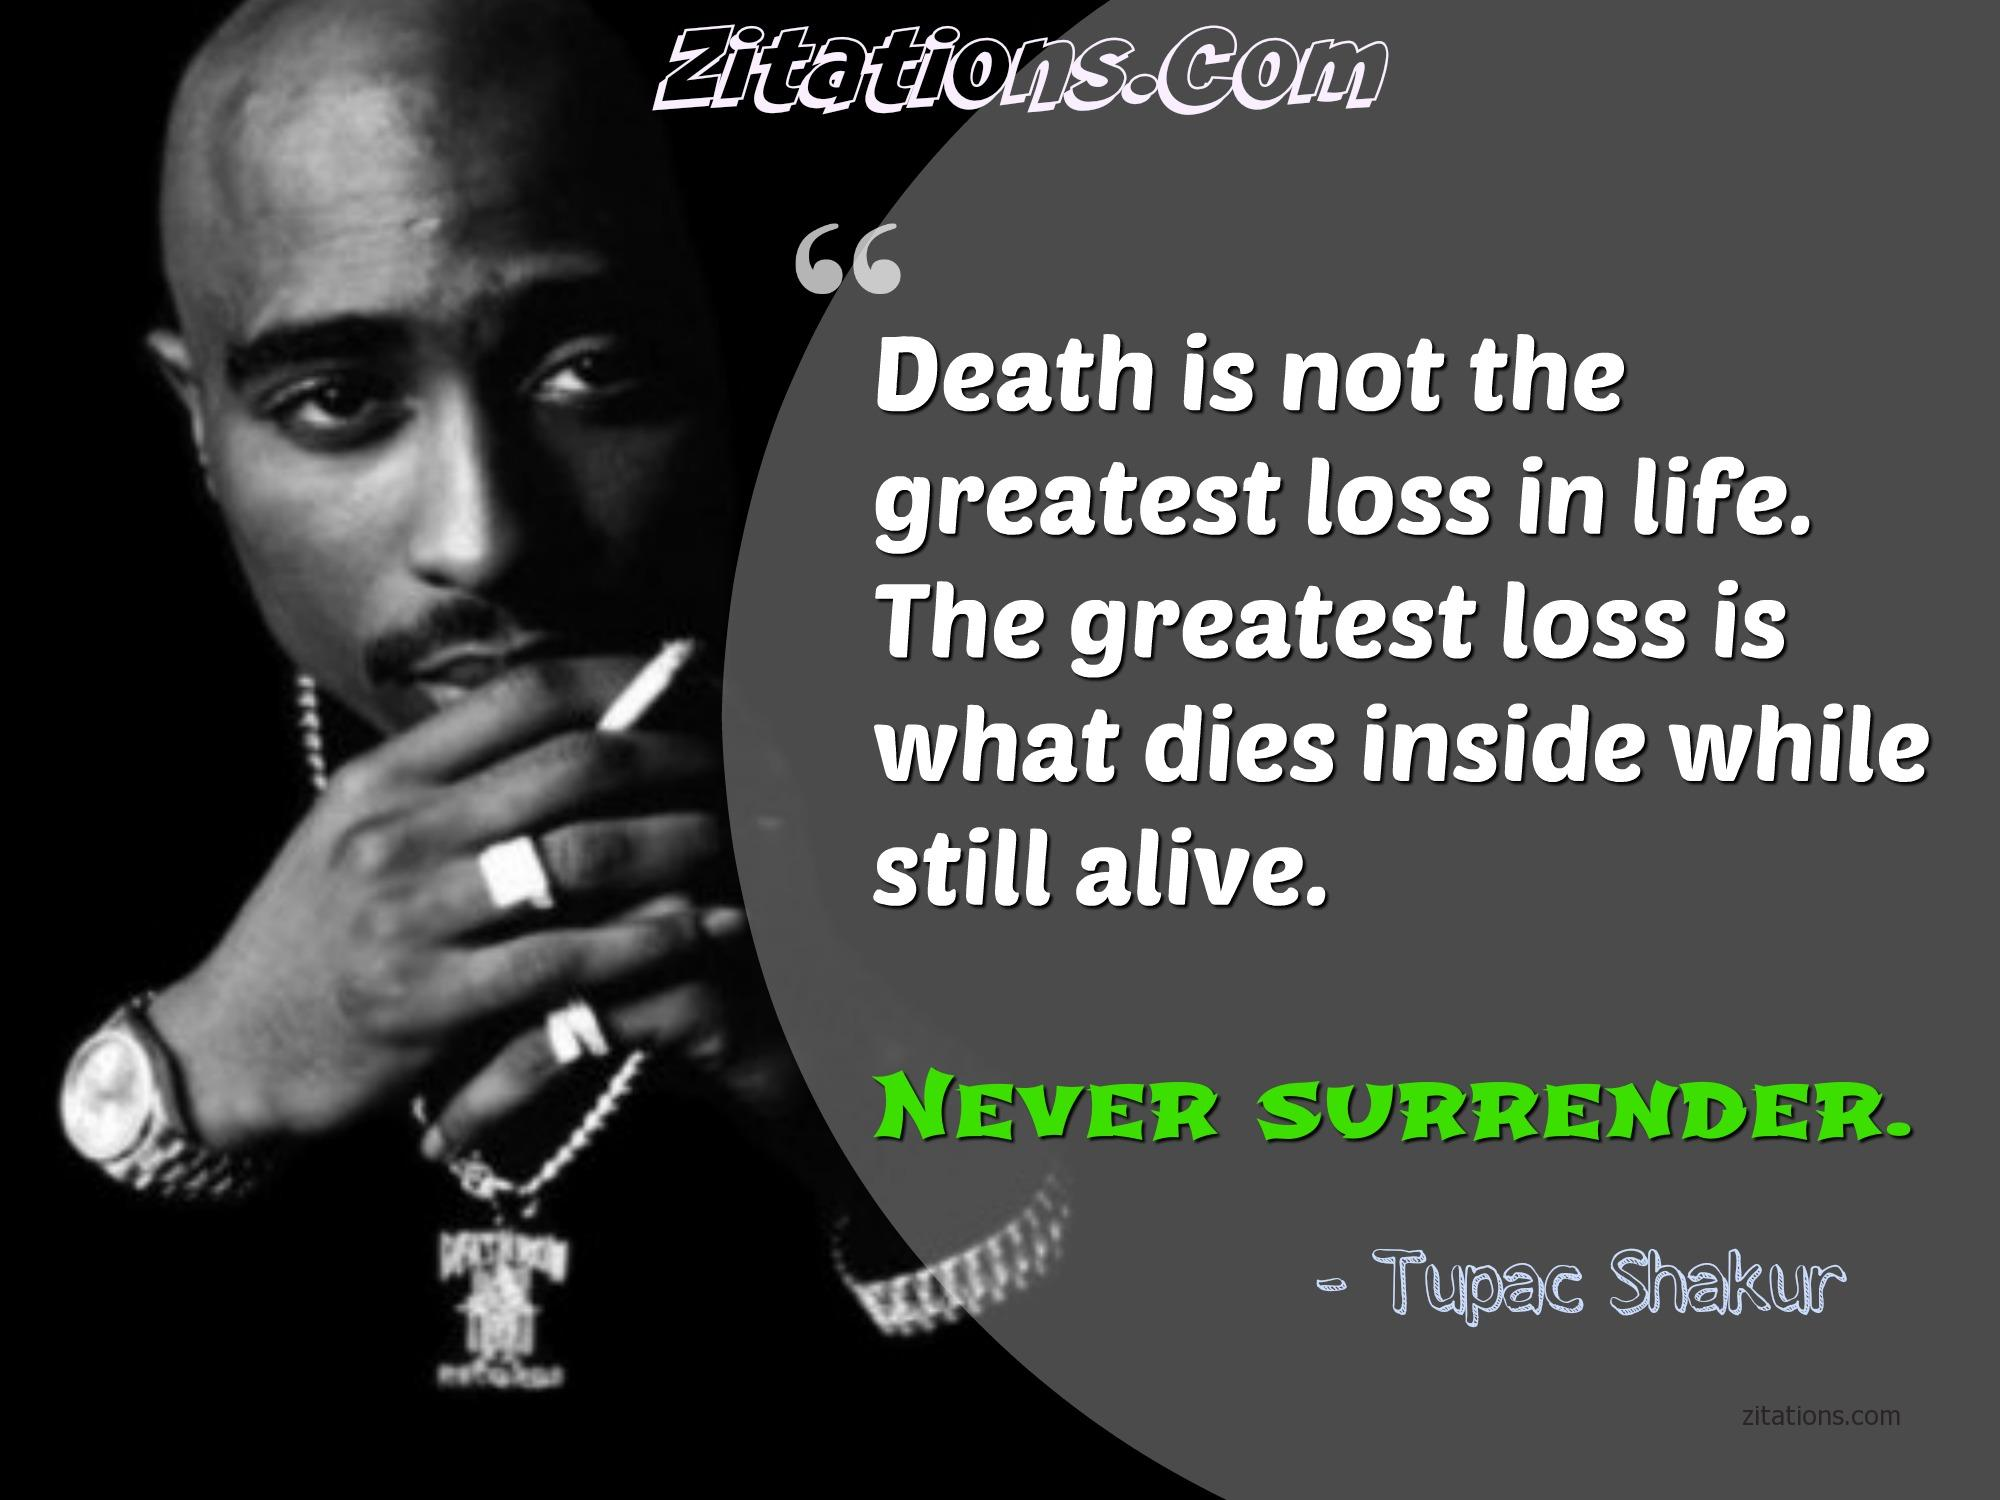 Best Tupac Quotes - Motivational